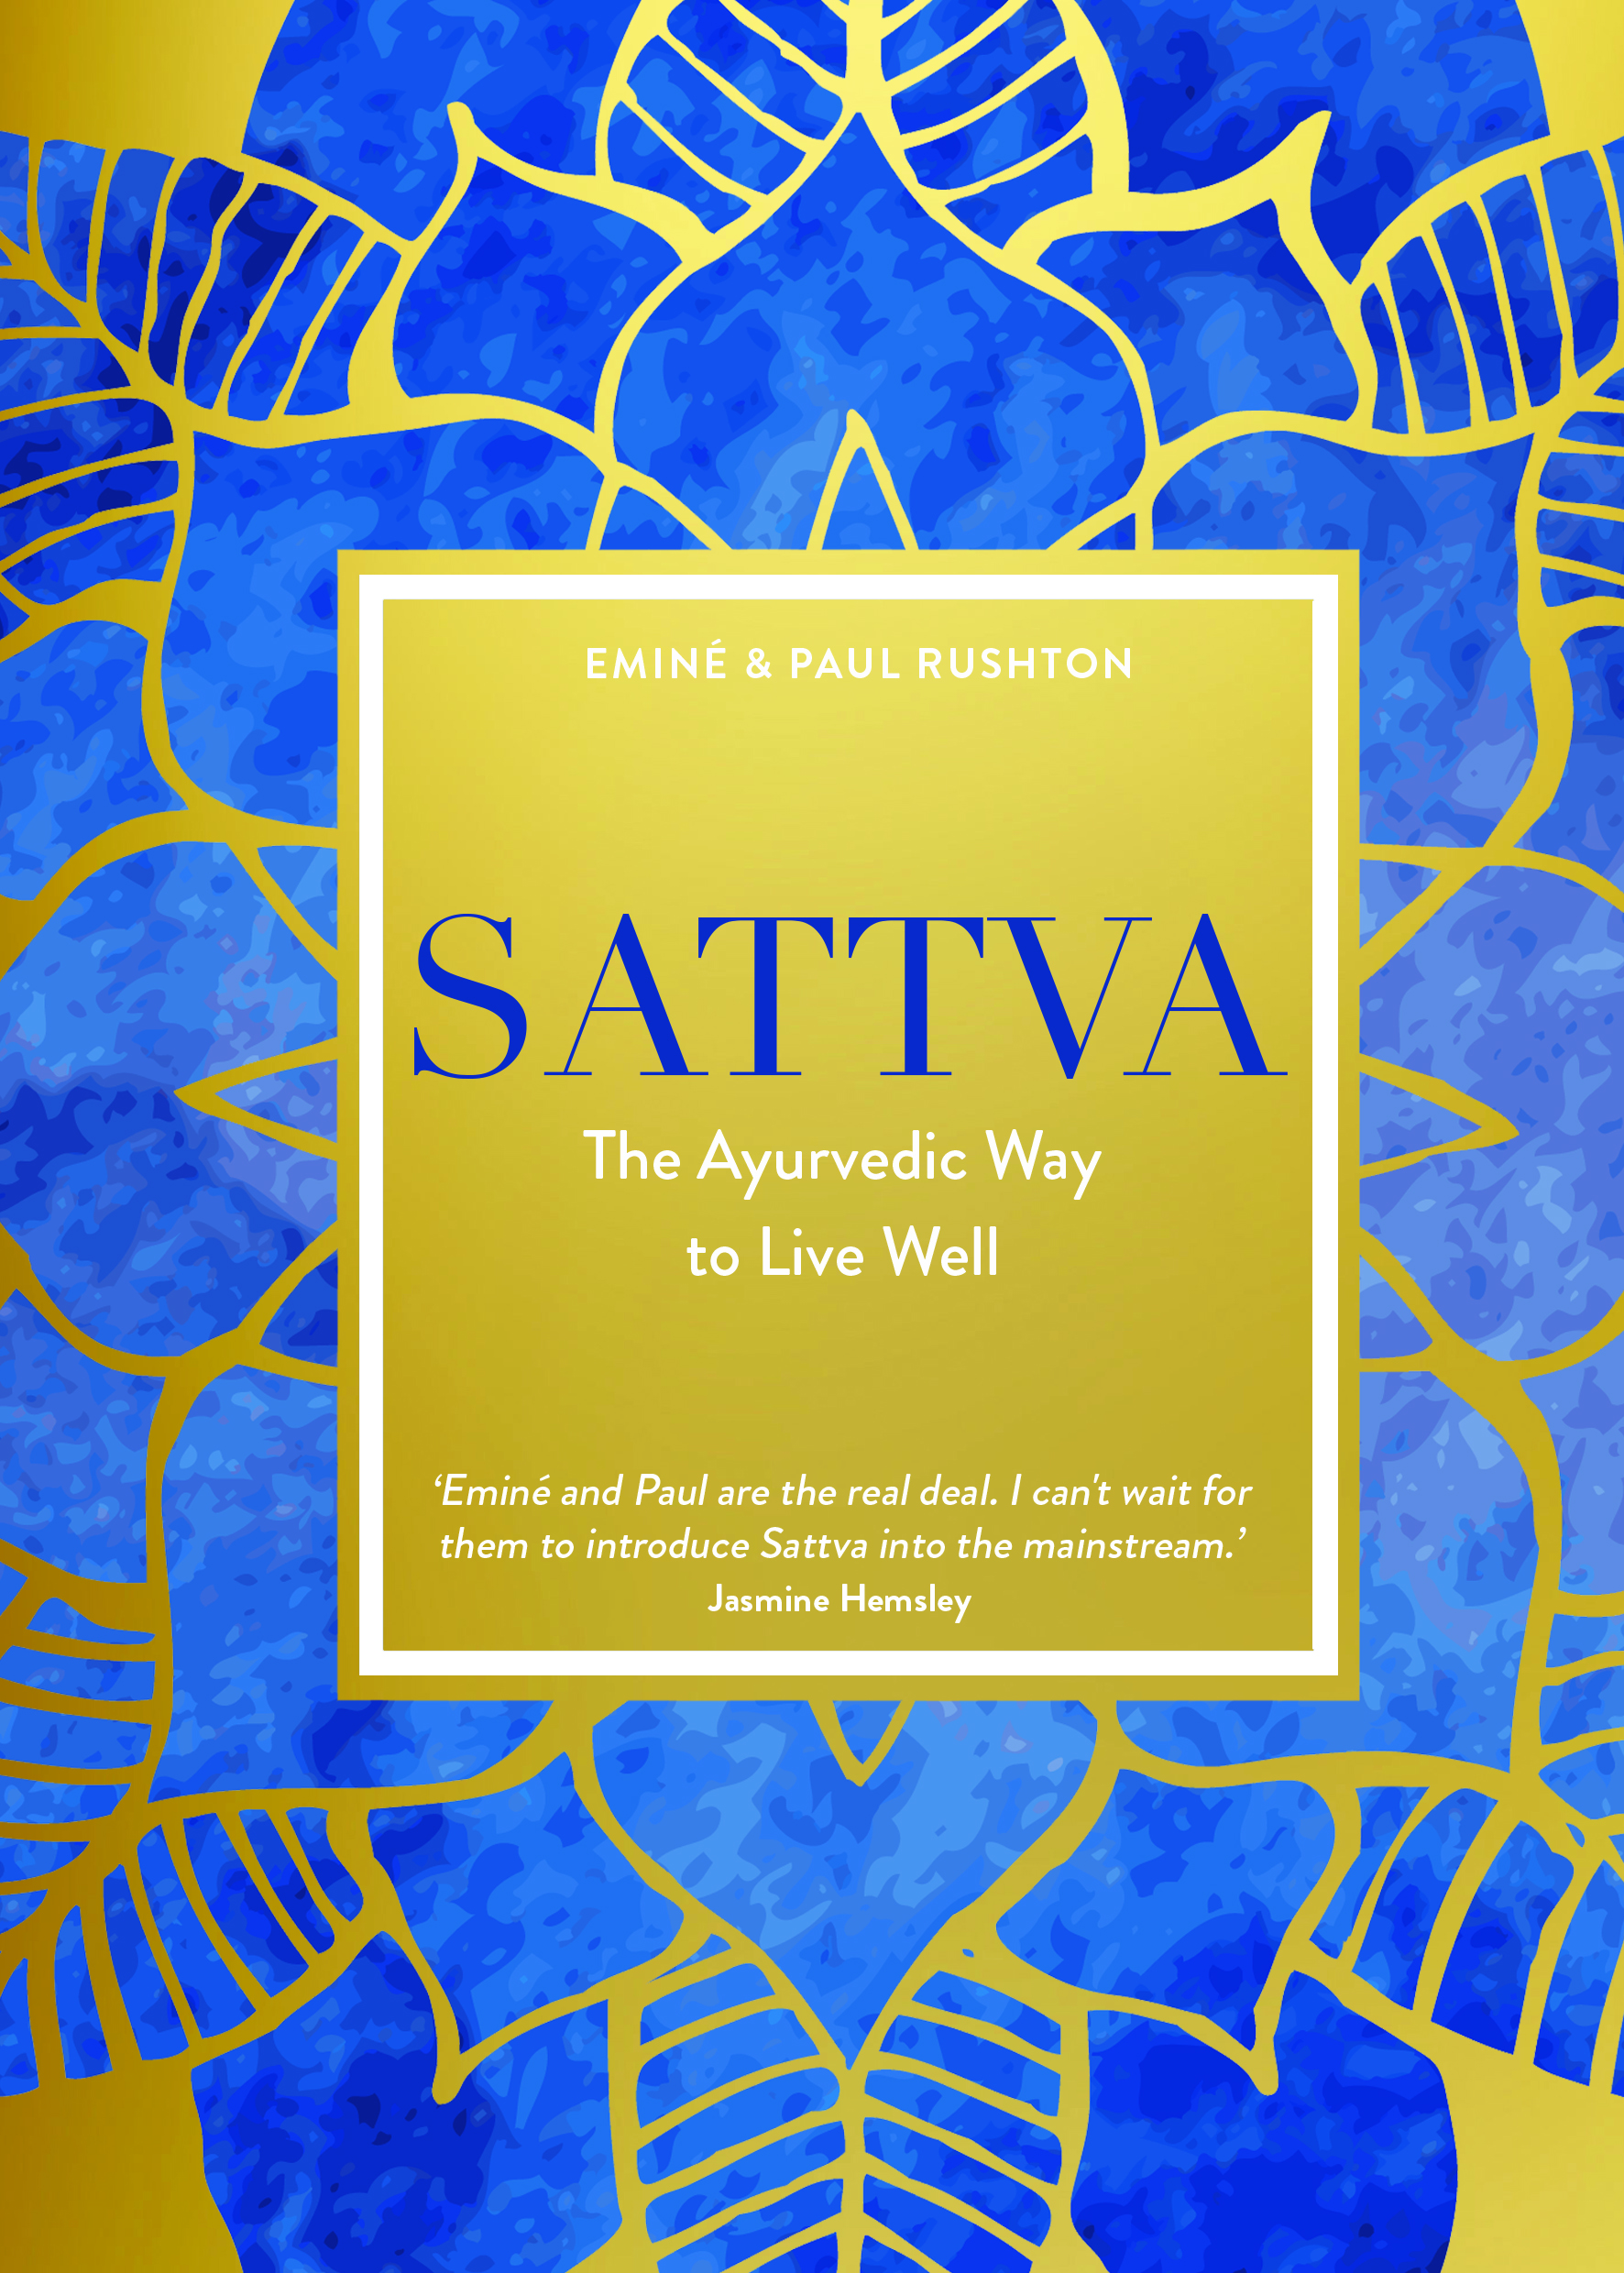 SATTVA: The Ayurvedic Way to Live Well  Ayurveda, 272 pages, Hay House UK, June 2019  Sattva is one of the three basic life forces outlined in Ayurvedic teachings. Among the beautiful qualities it embodies - unity, harmony, purity, vitality, clarity, gentleness and serenity - are essences of nature that we're craving more than ever in our busy lives.  In this book, you'll find a complete lifestyle prescription for balance and peace in our hectic Western world. SATTVA offers a simple guide to living in harmony with seasonal cycles, resources for conscious living and nourishment for body and soul.  A celebration of ancient, holistic wisdom for intuitive modern living, Sattva has the power to help us move from chaos into consciousness. Let it remind you of your natural state of being.